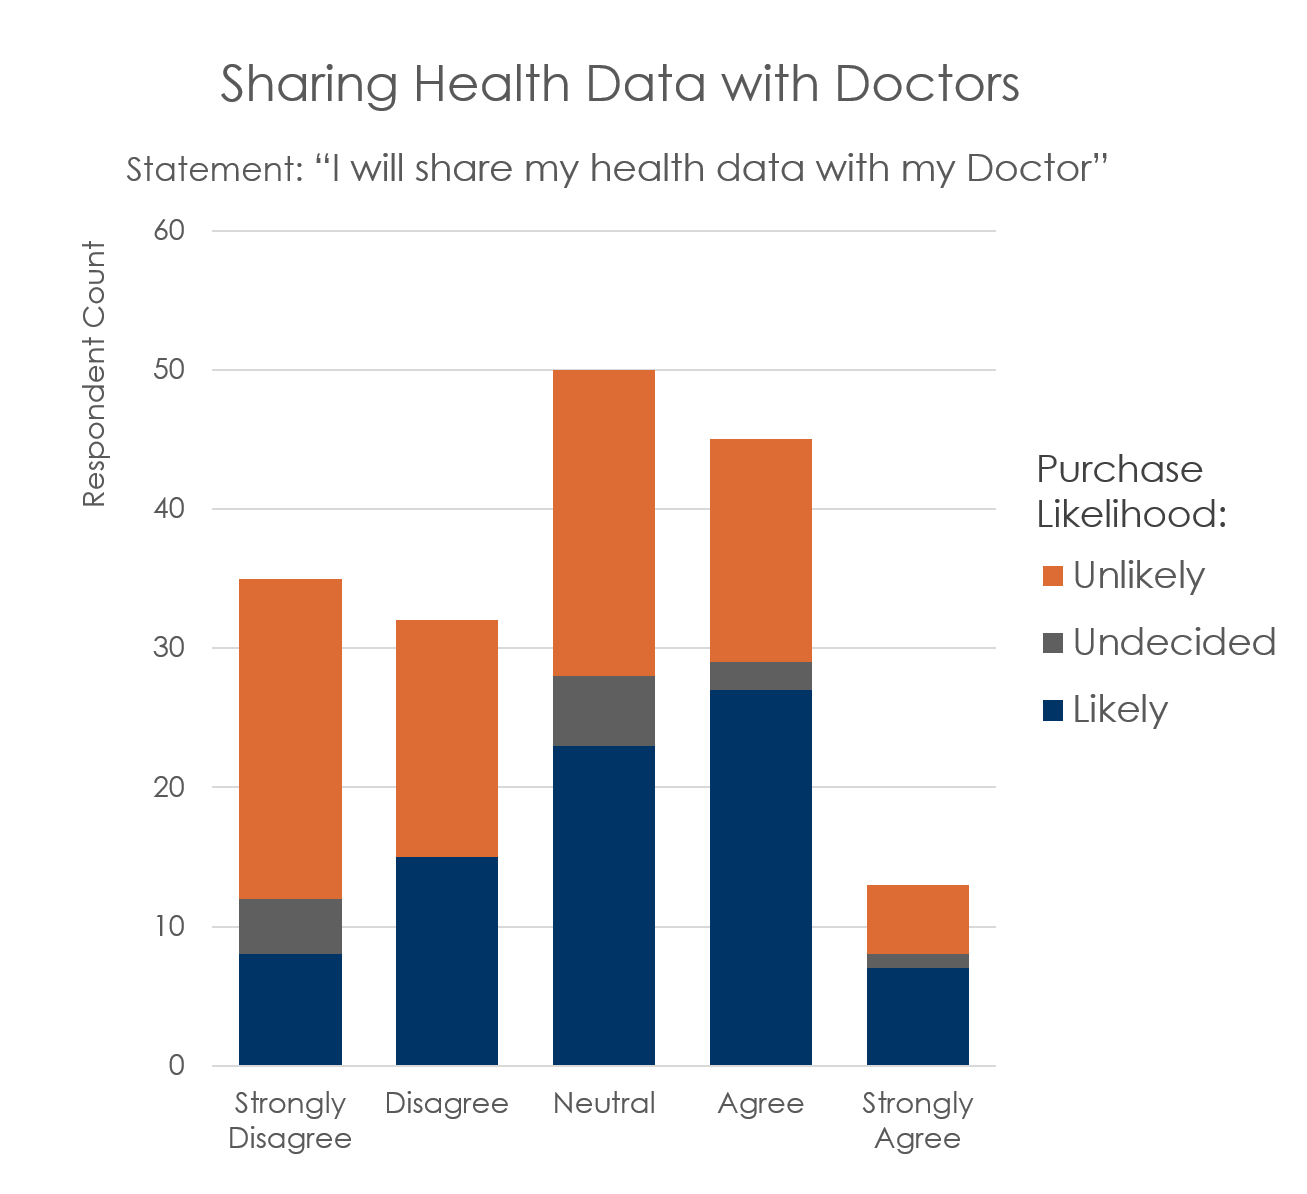 Doctor Data Sharing.png